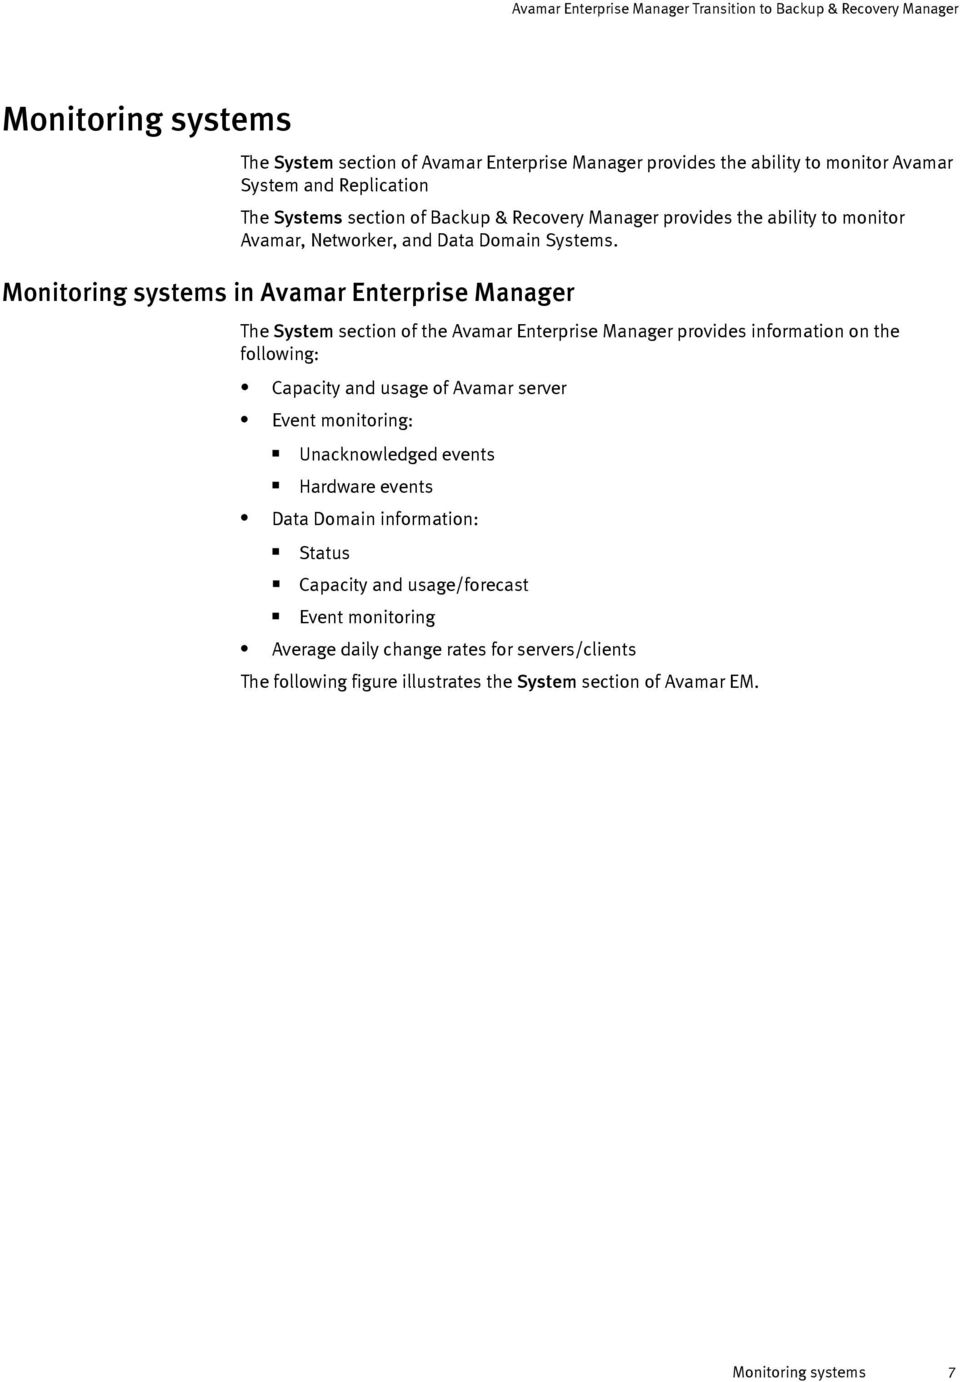 Monitoring systems in Avamar Enterprise Manager The System section of the Avamar Enterprise Manager provides information on the following: Capacity and usage of Avamar server Event